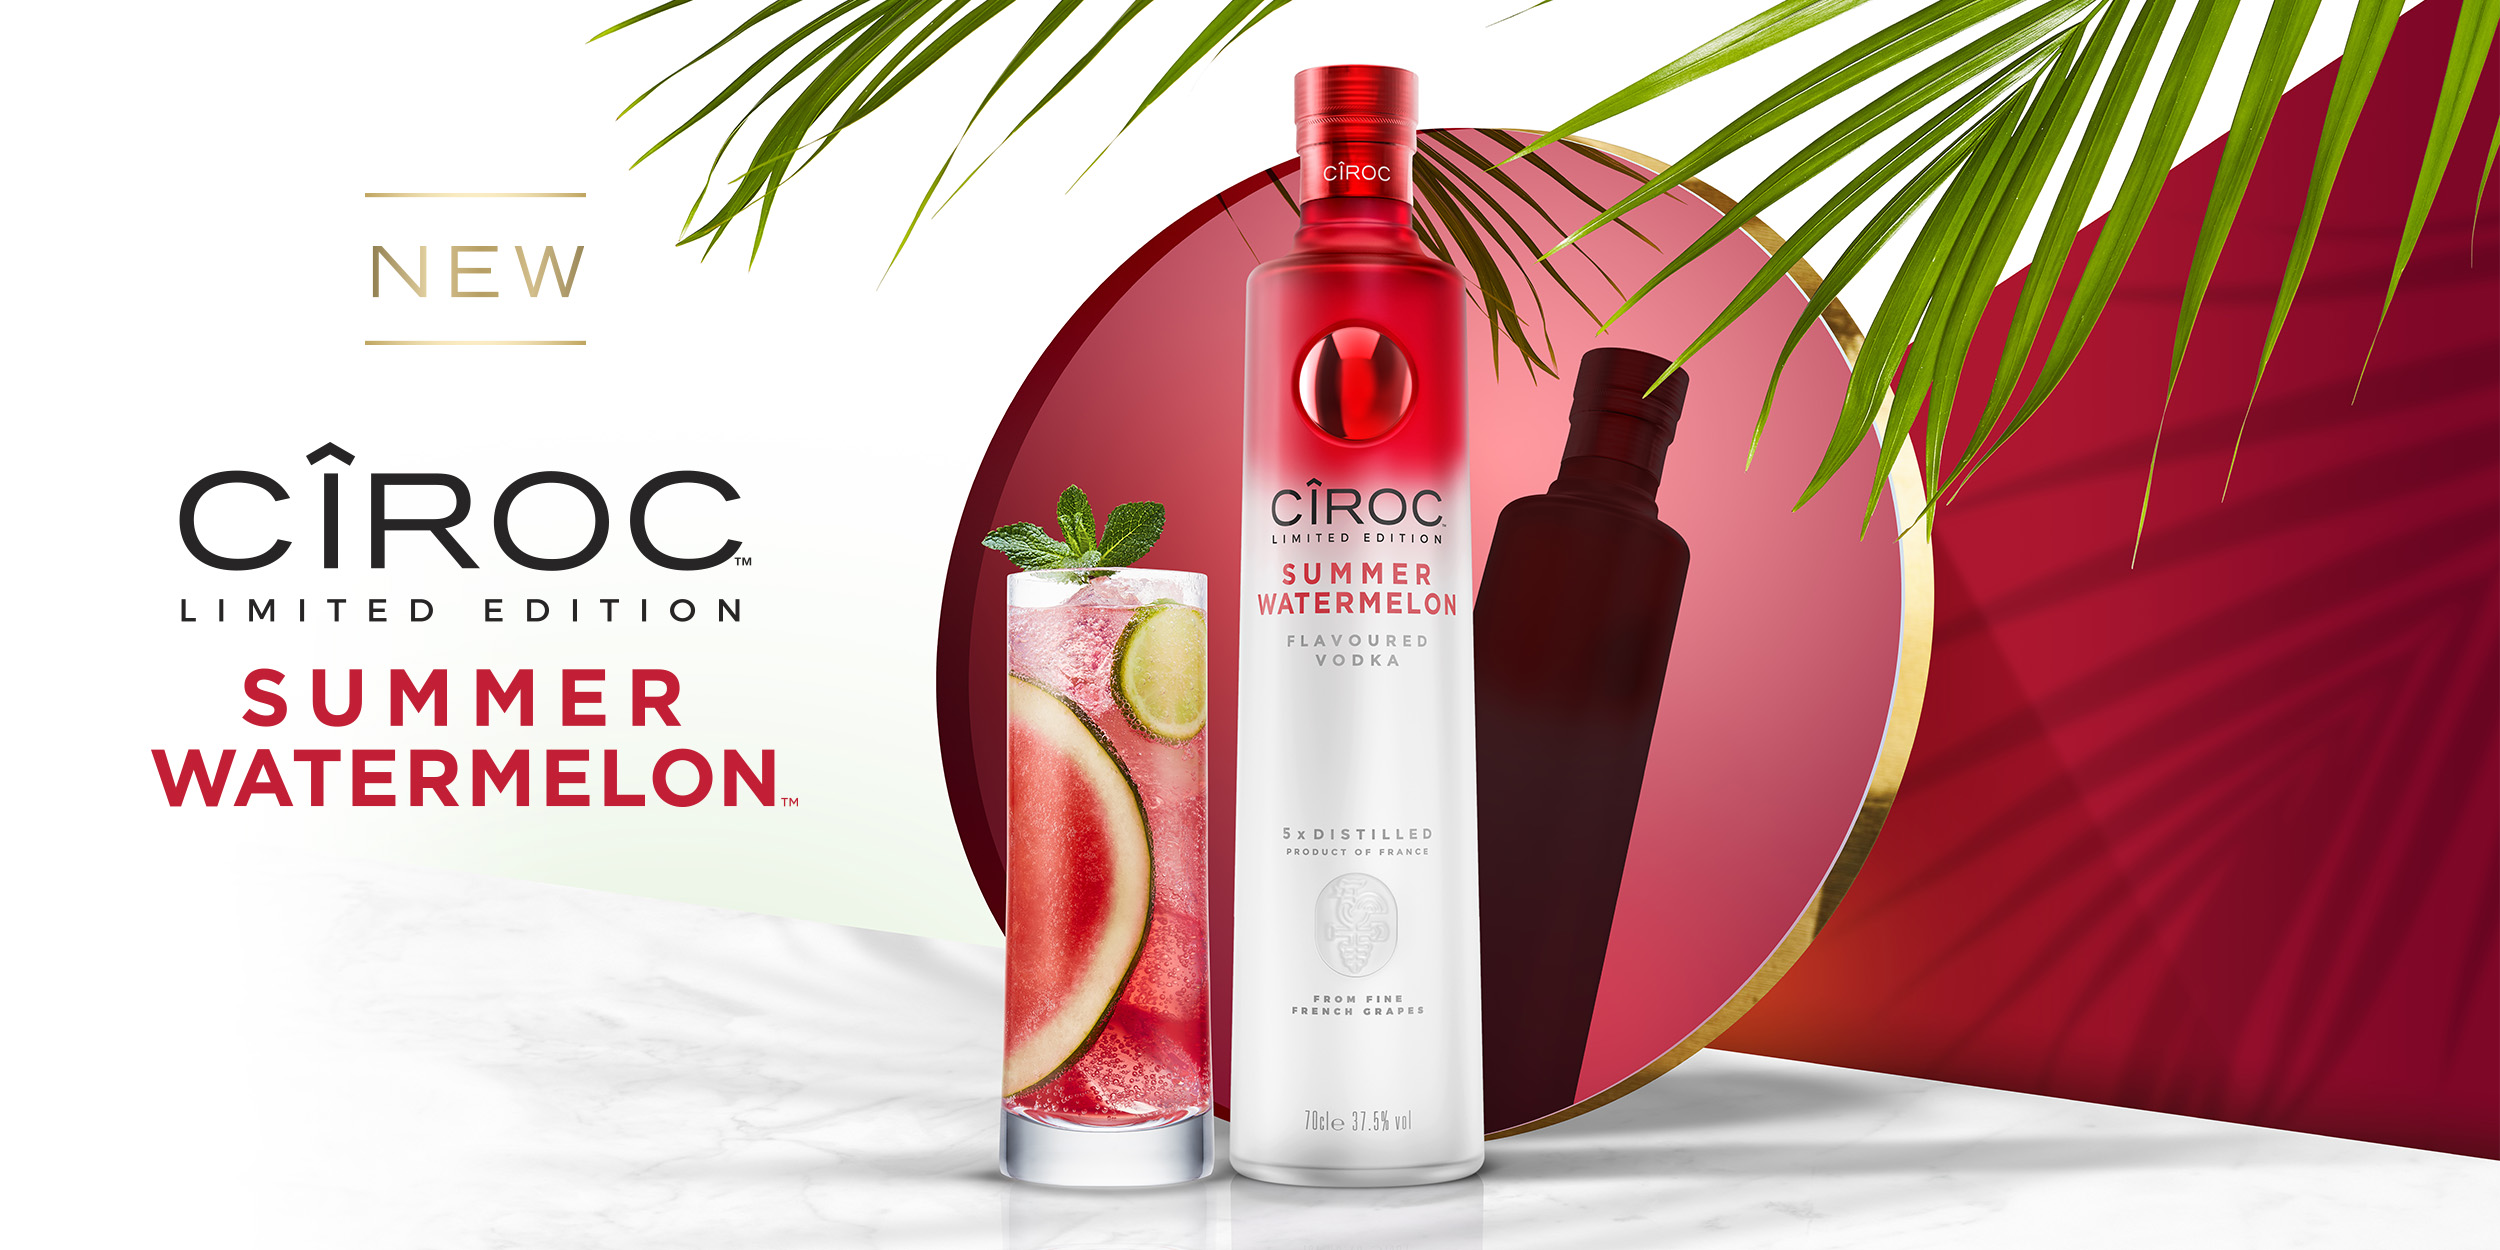 CIROC Summer Watermelon Key Visual.jpg